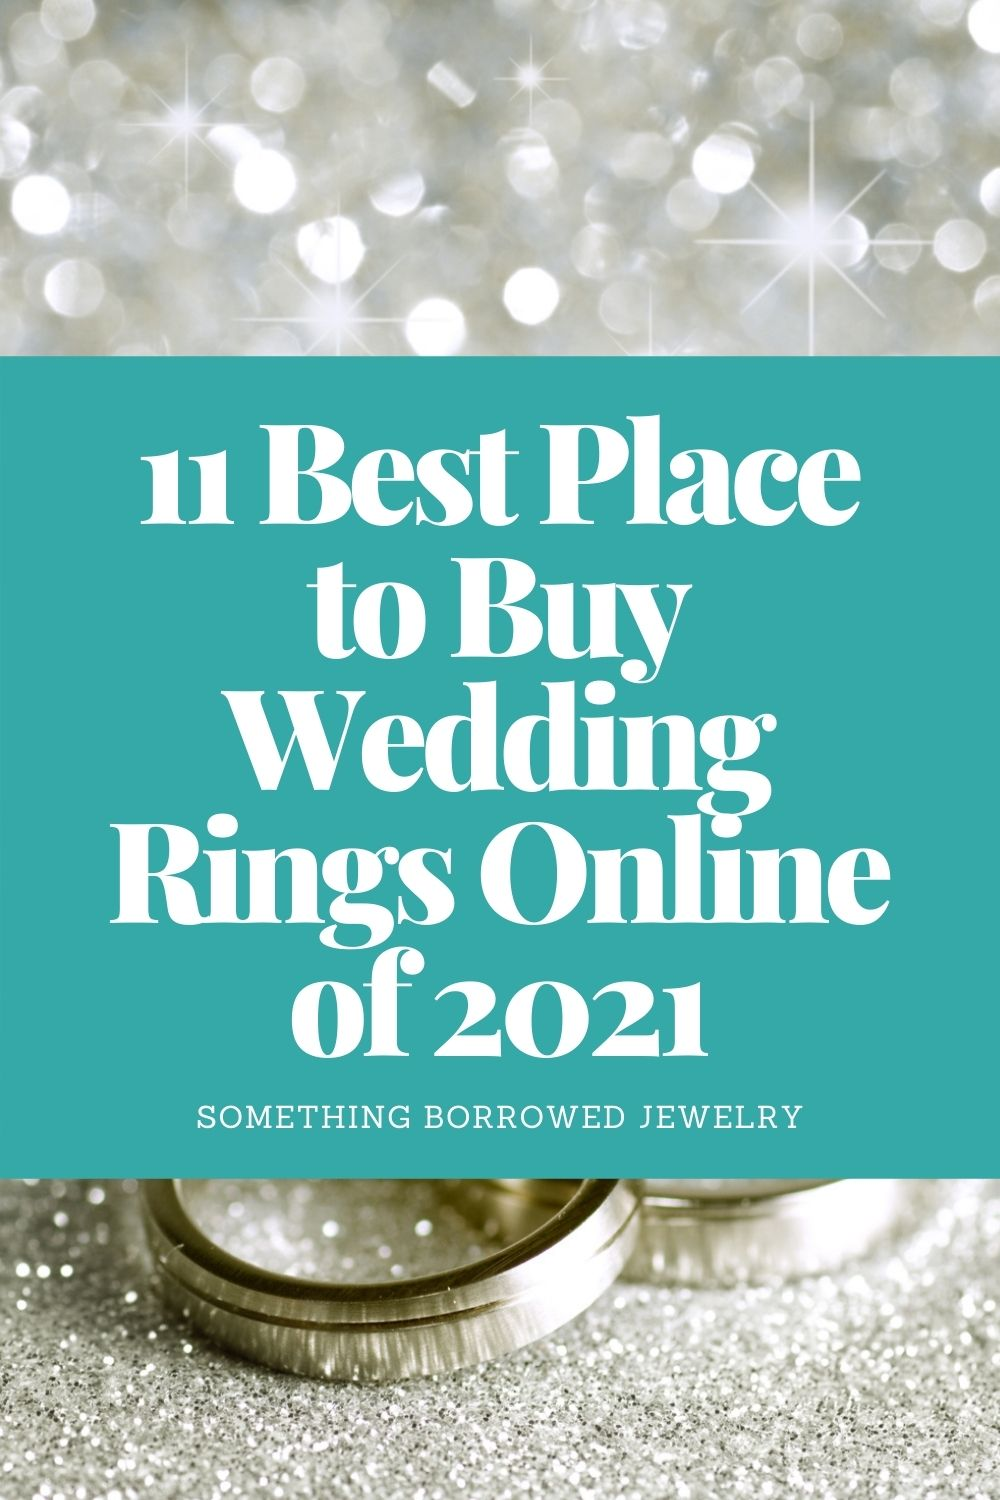 11 Best Place to Buy Wedding Rings Online of 2021 pin